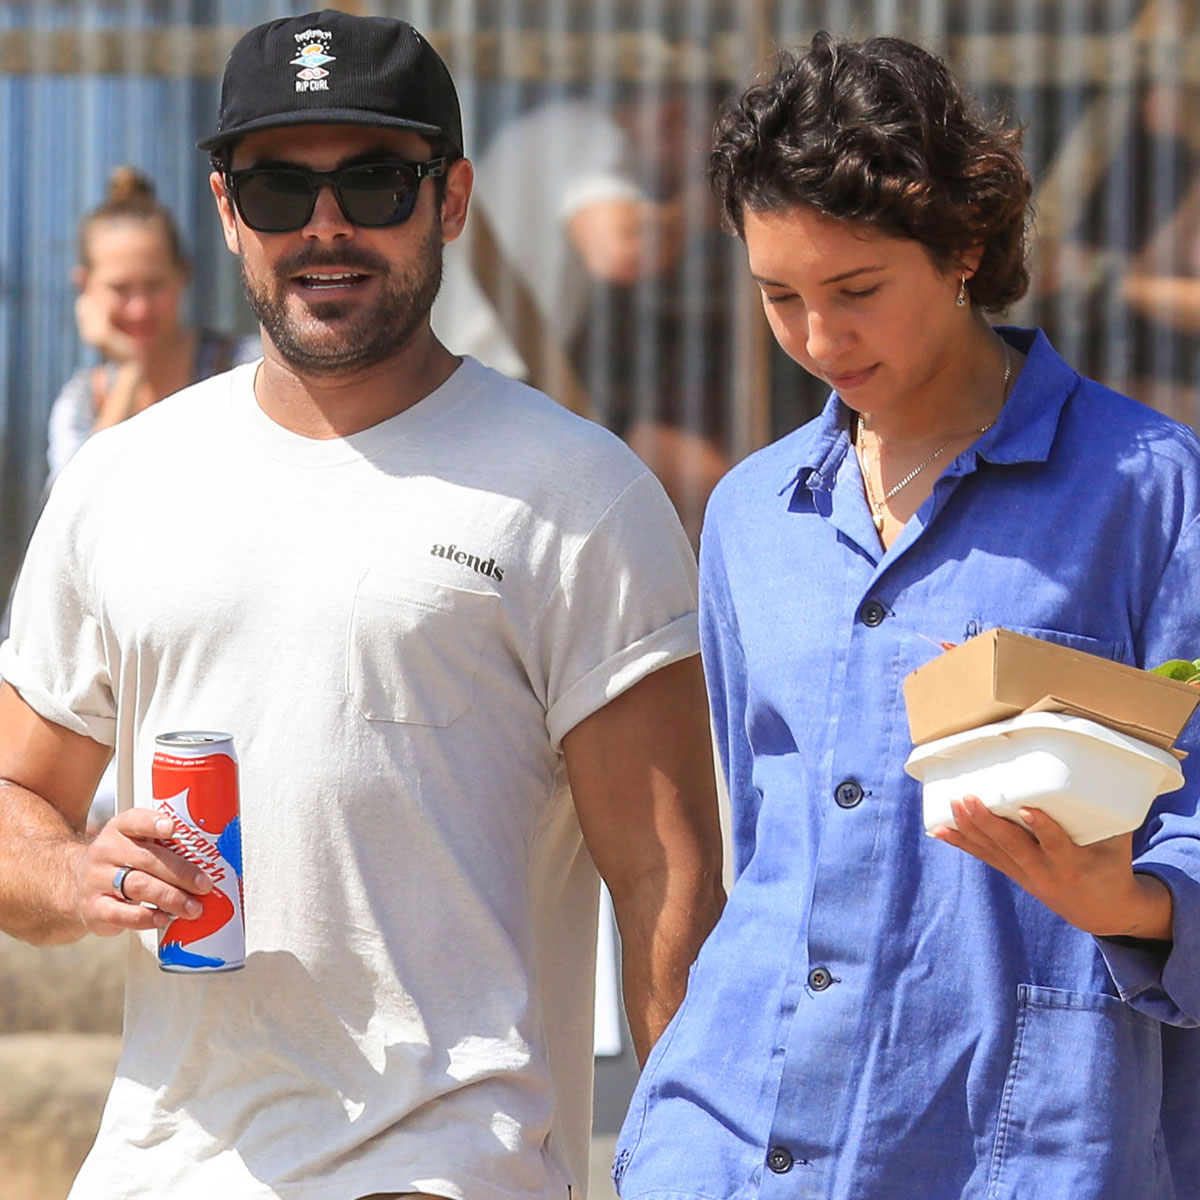 Zac Efron and Vanessa Valladares Prove They're Still Going Strong in Rare Public Outing